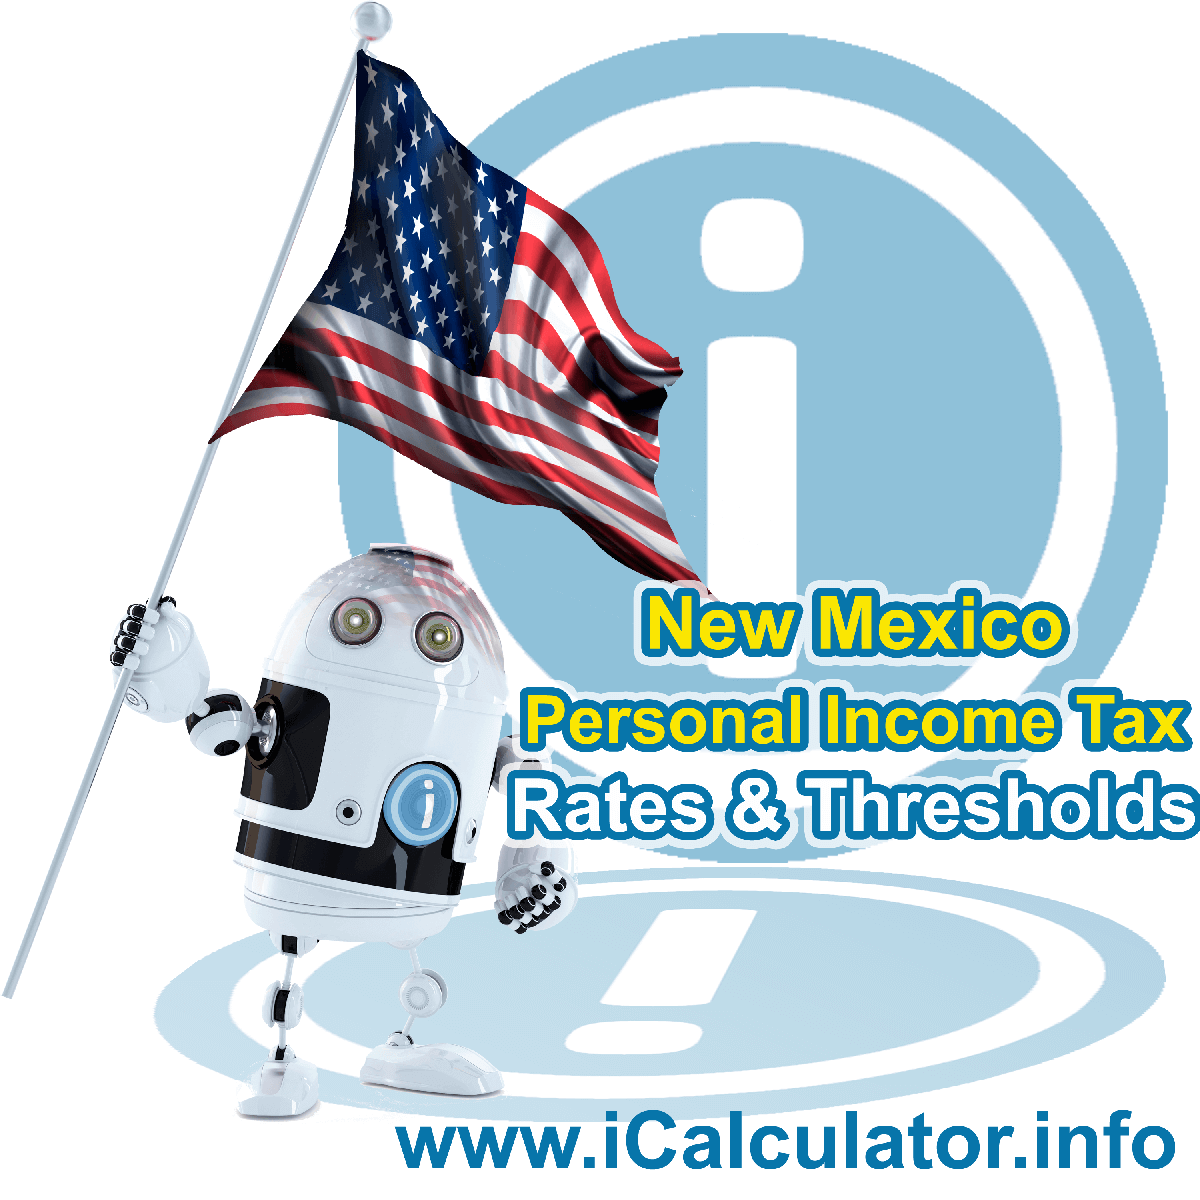 New Mexico State Tax Tables 2020. This image displays details of the New Mexico State Tax Tables for the 2020 tax return year which is provided in support of the 2020 US Tax Calculator